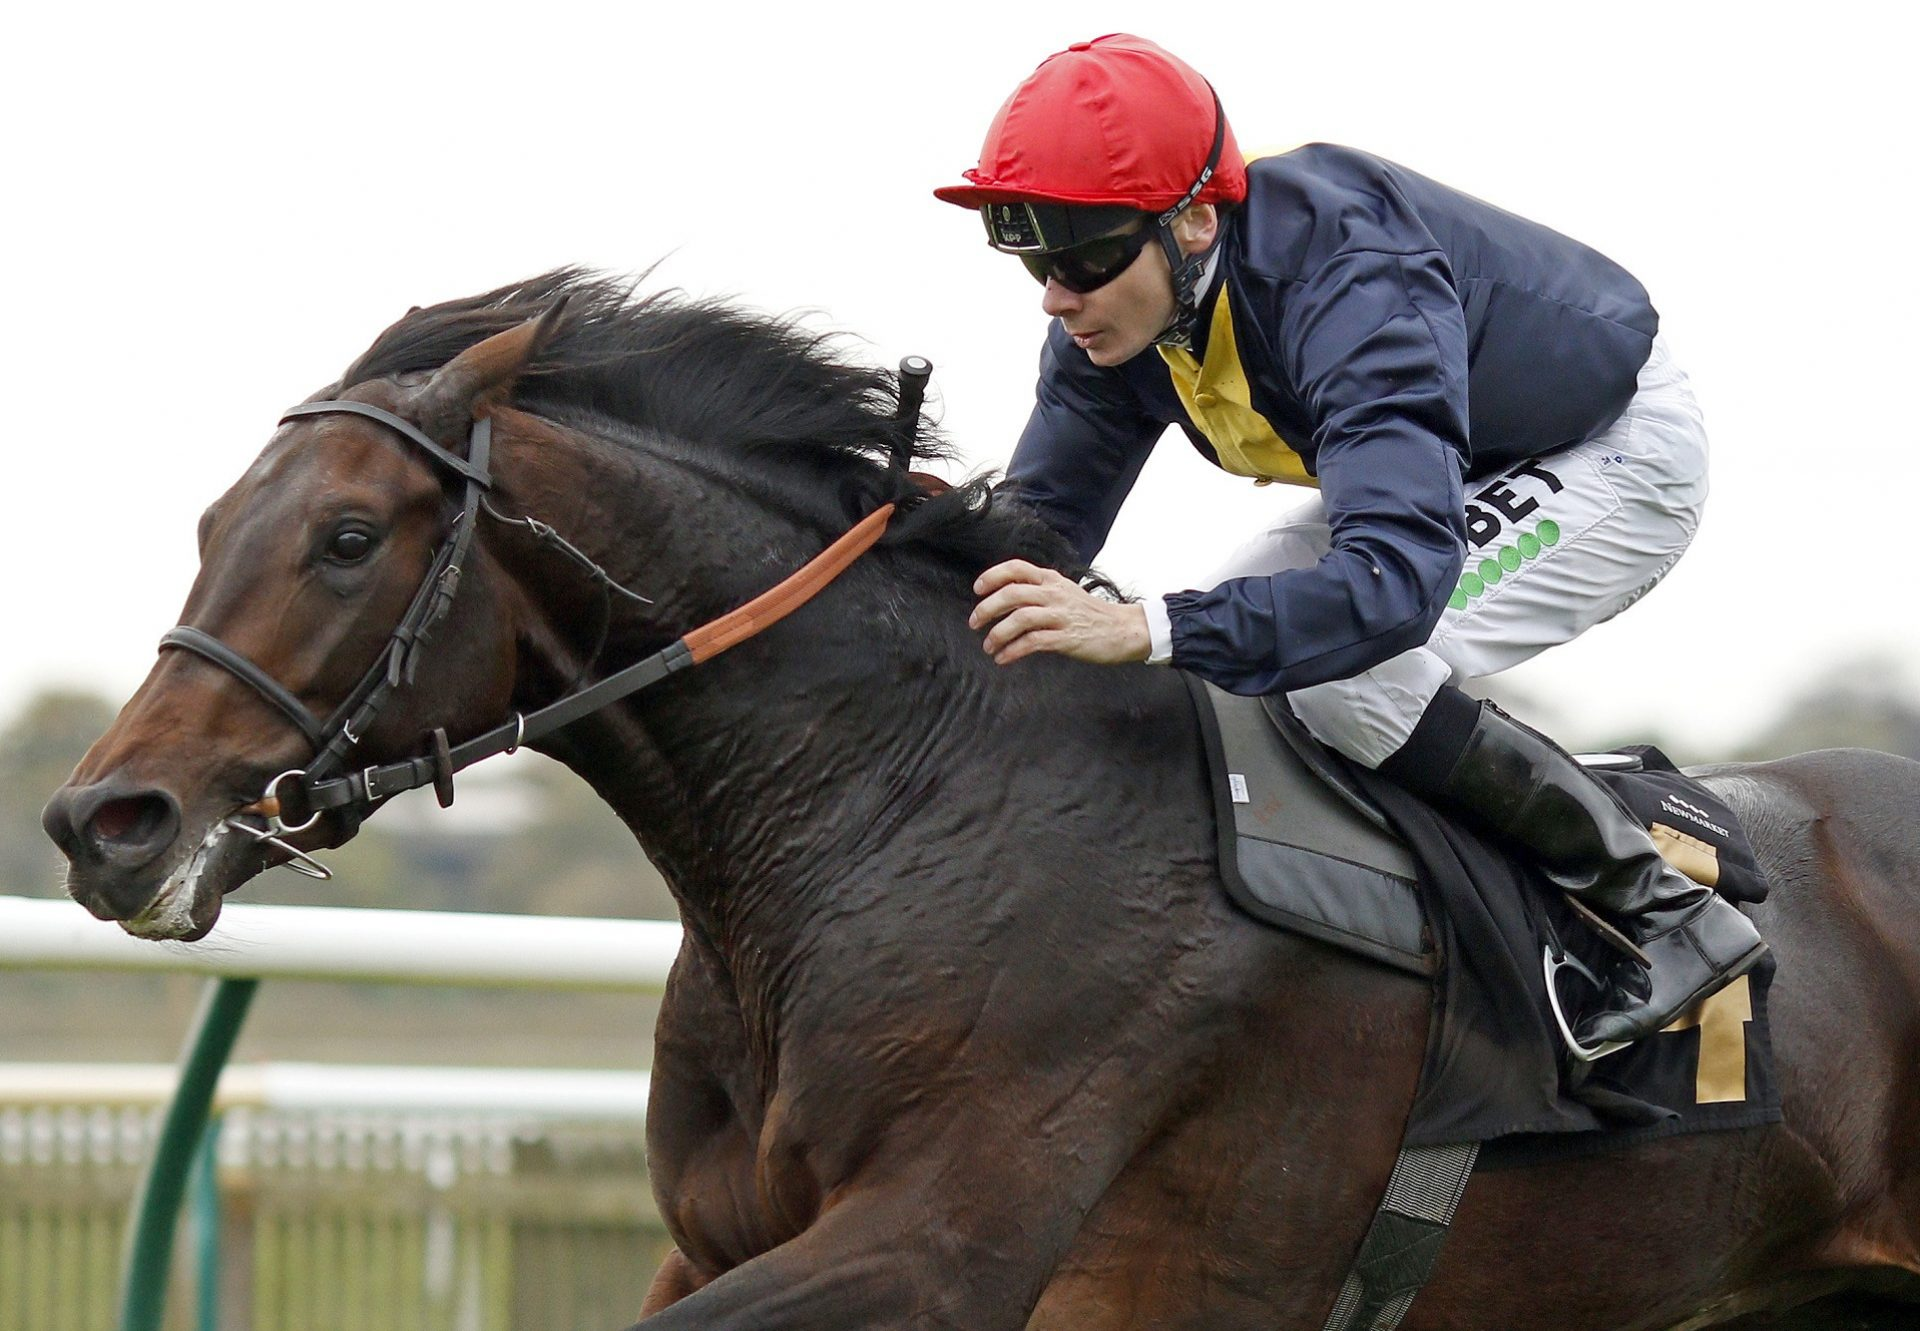 Brentford Hope (Camelot) winning his maiden on debut at Newmarket